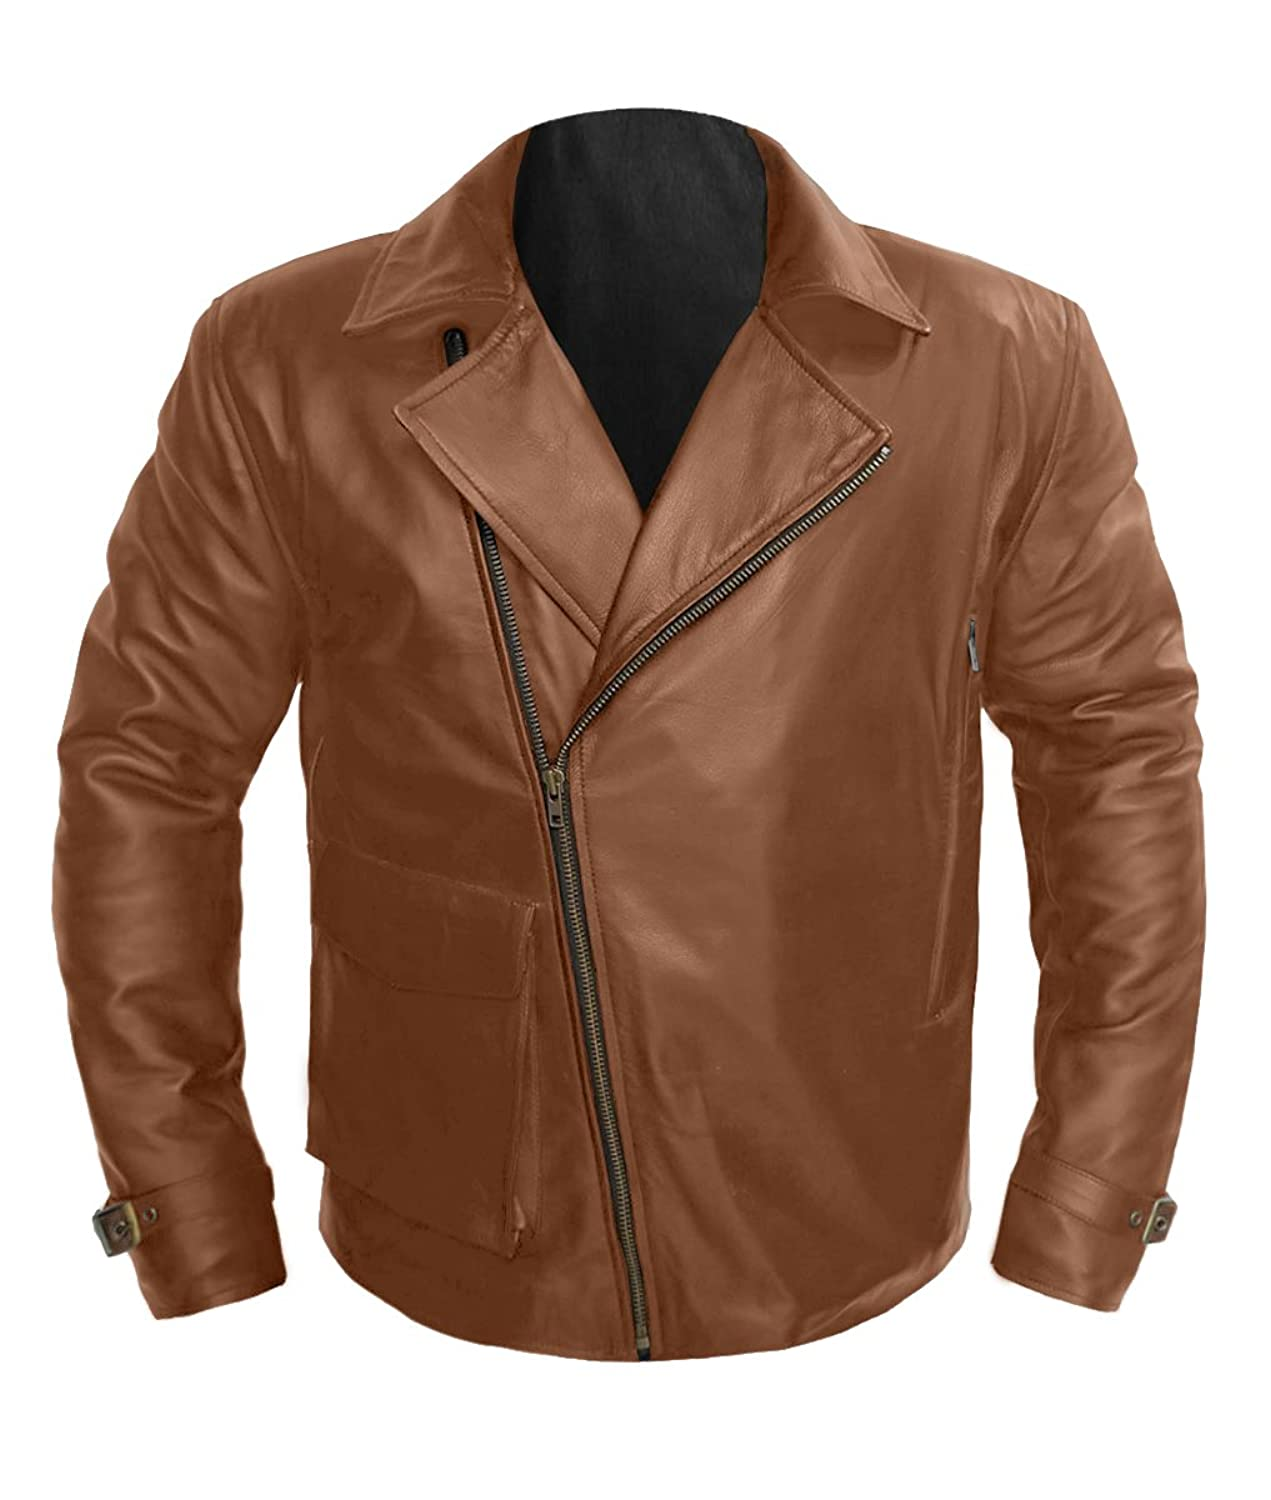 Men's Captain America First Avengers Brown Real Leather Jacket - DeluxeAdultCostumes.com